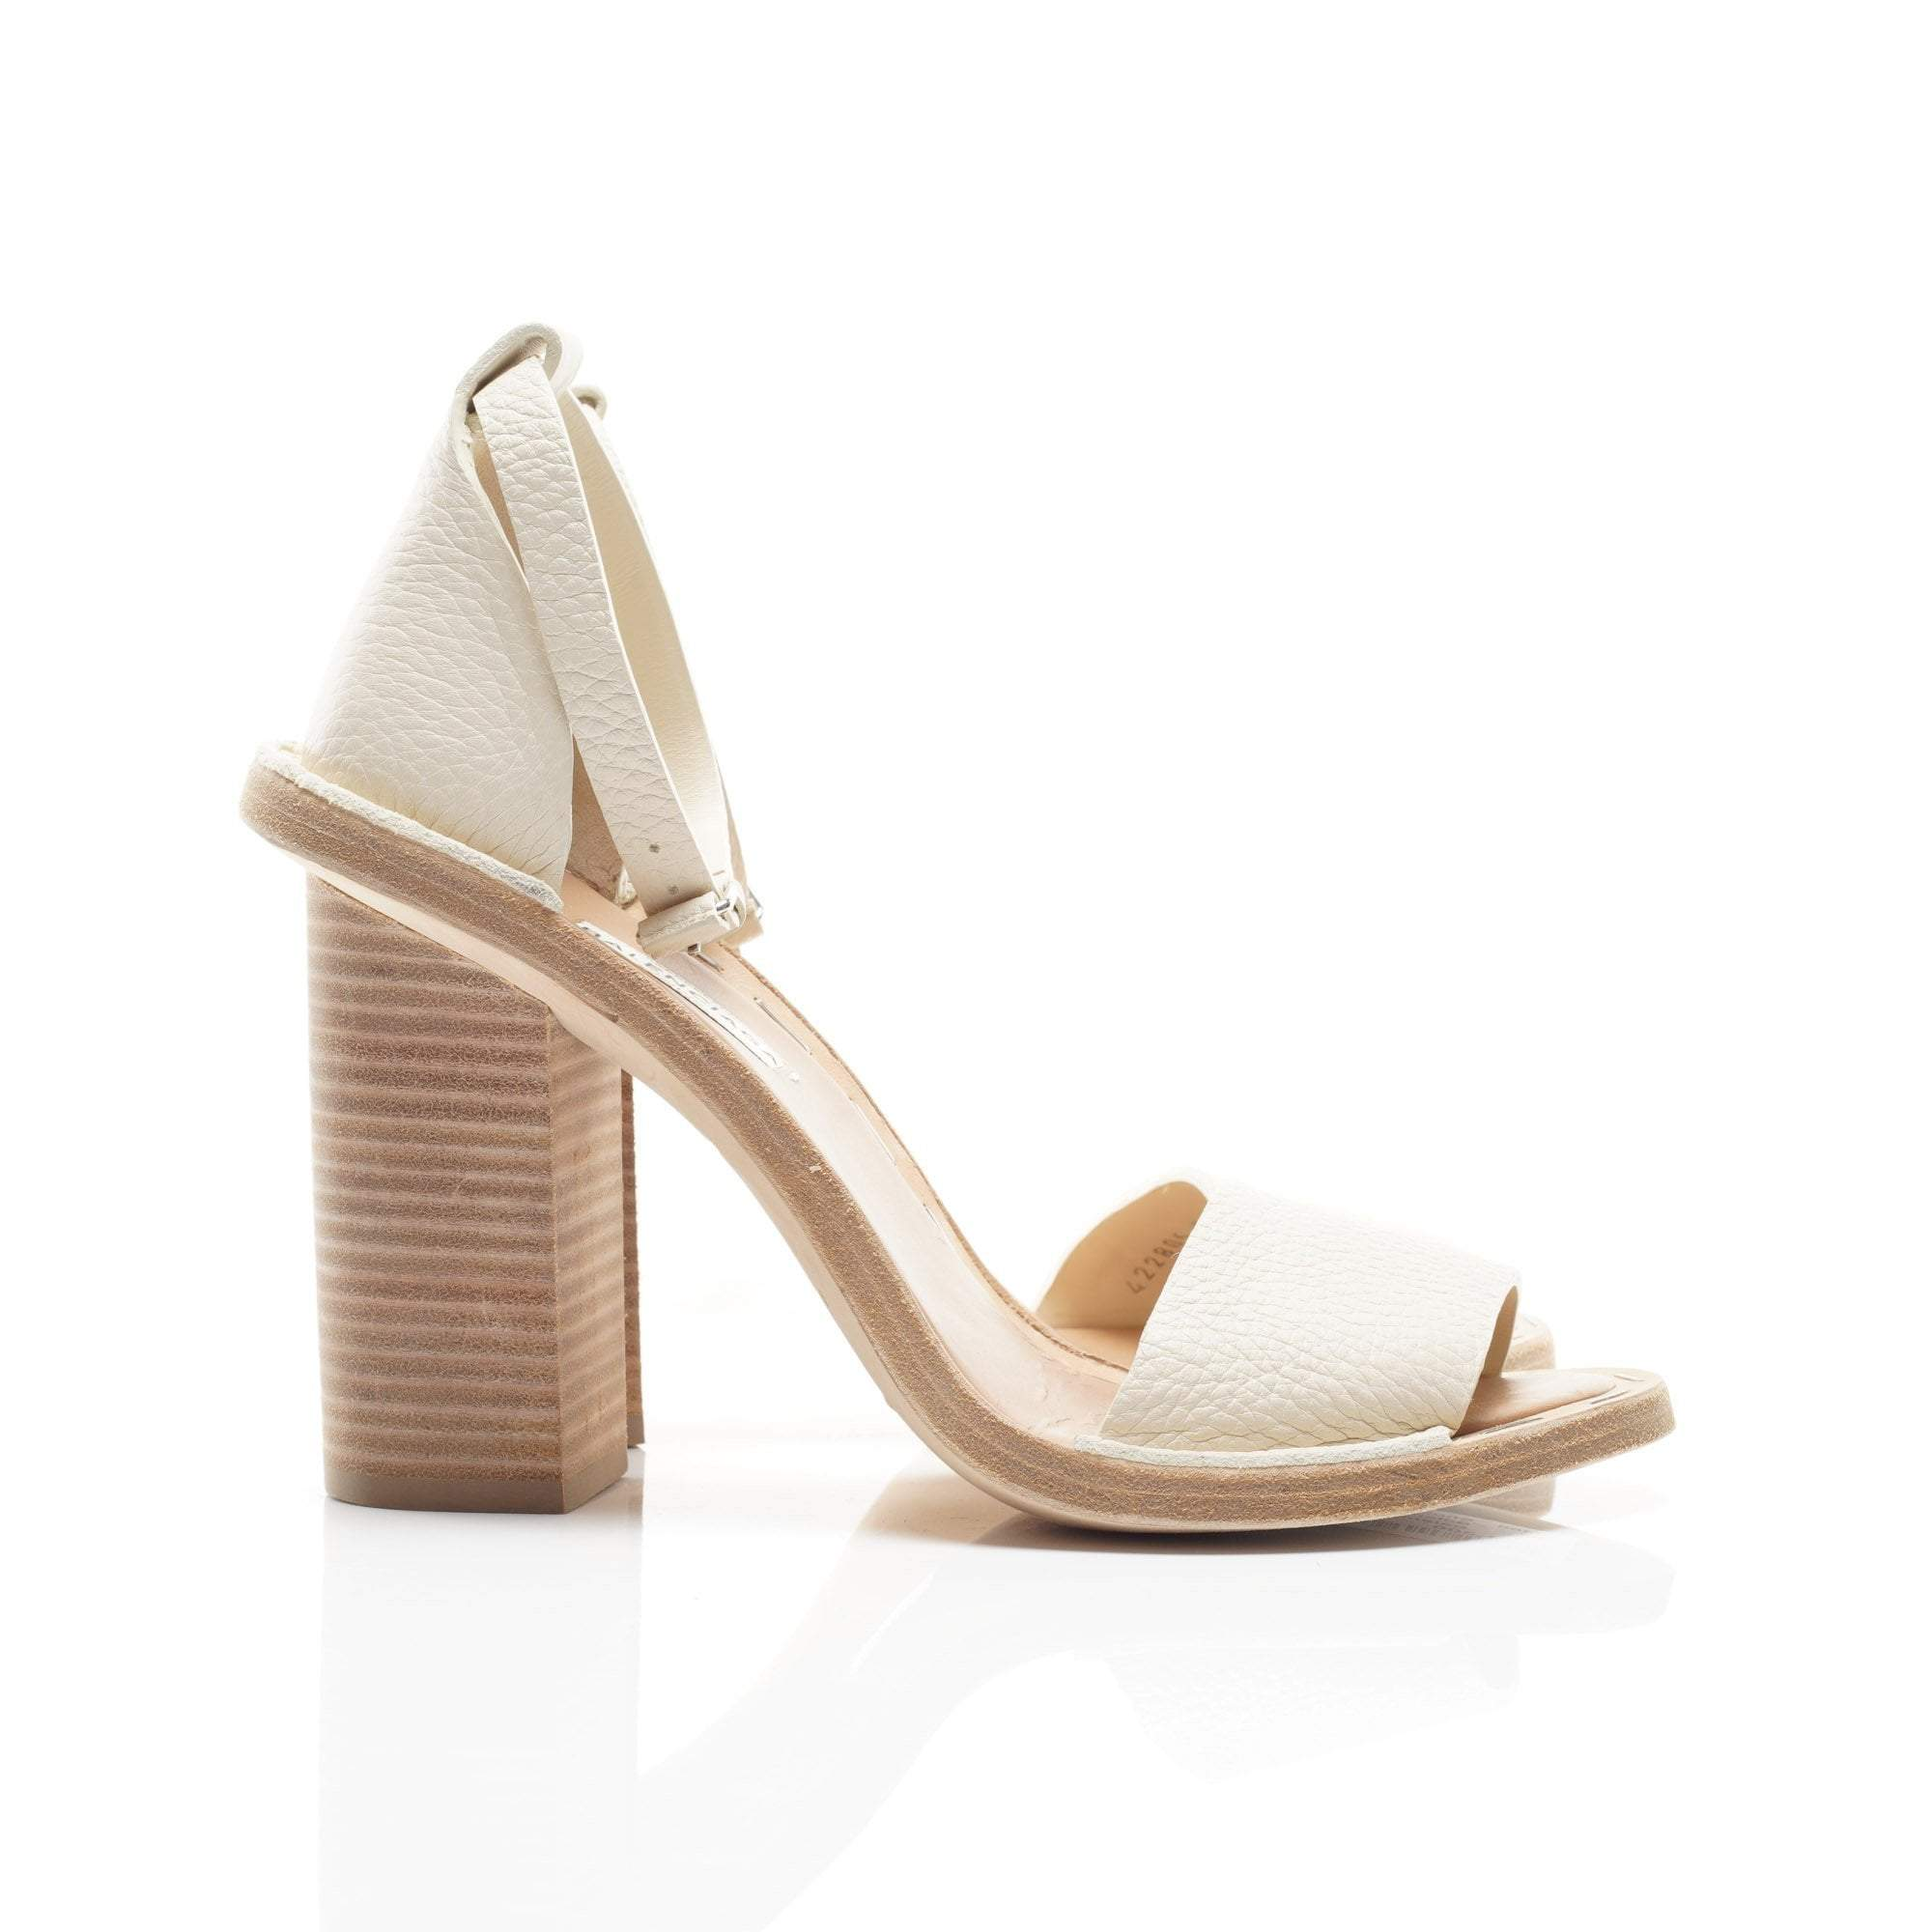 Balenciaga Wooden Heel Sandals